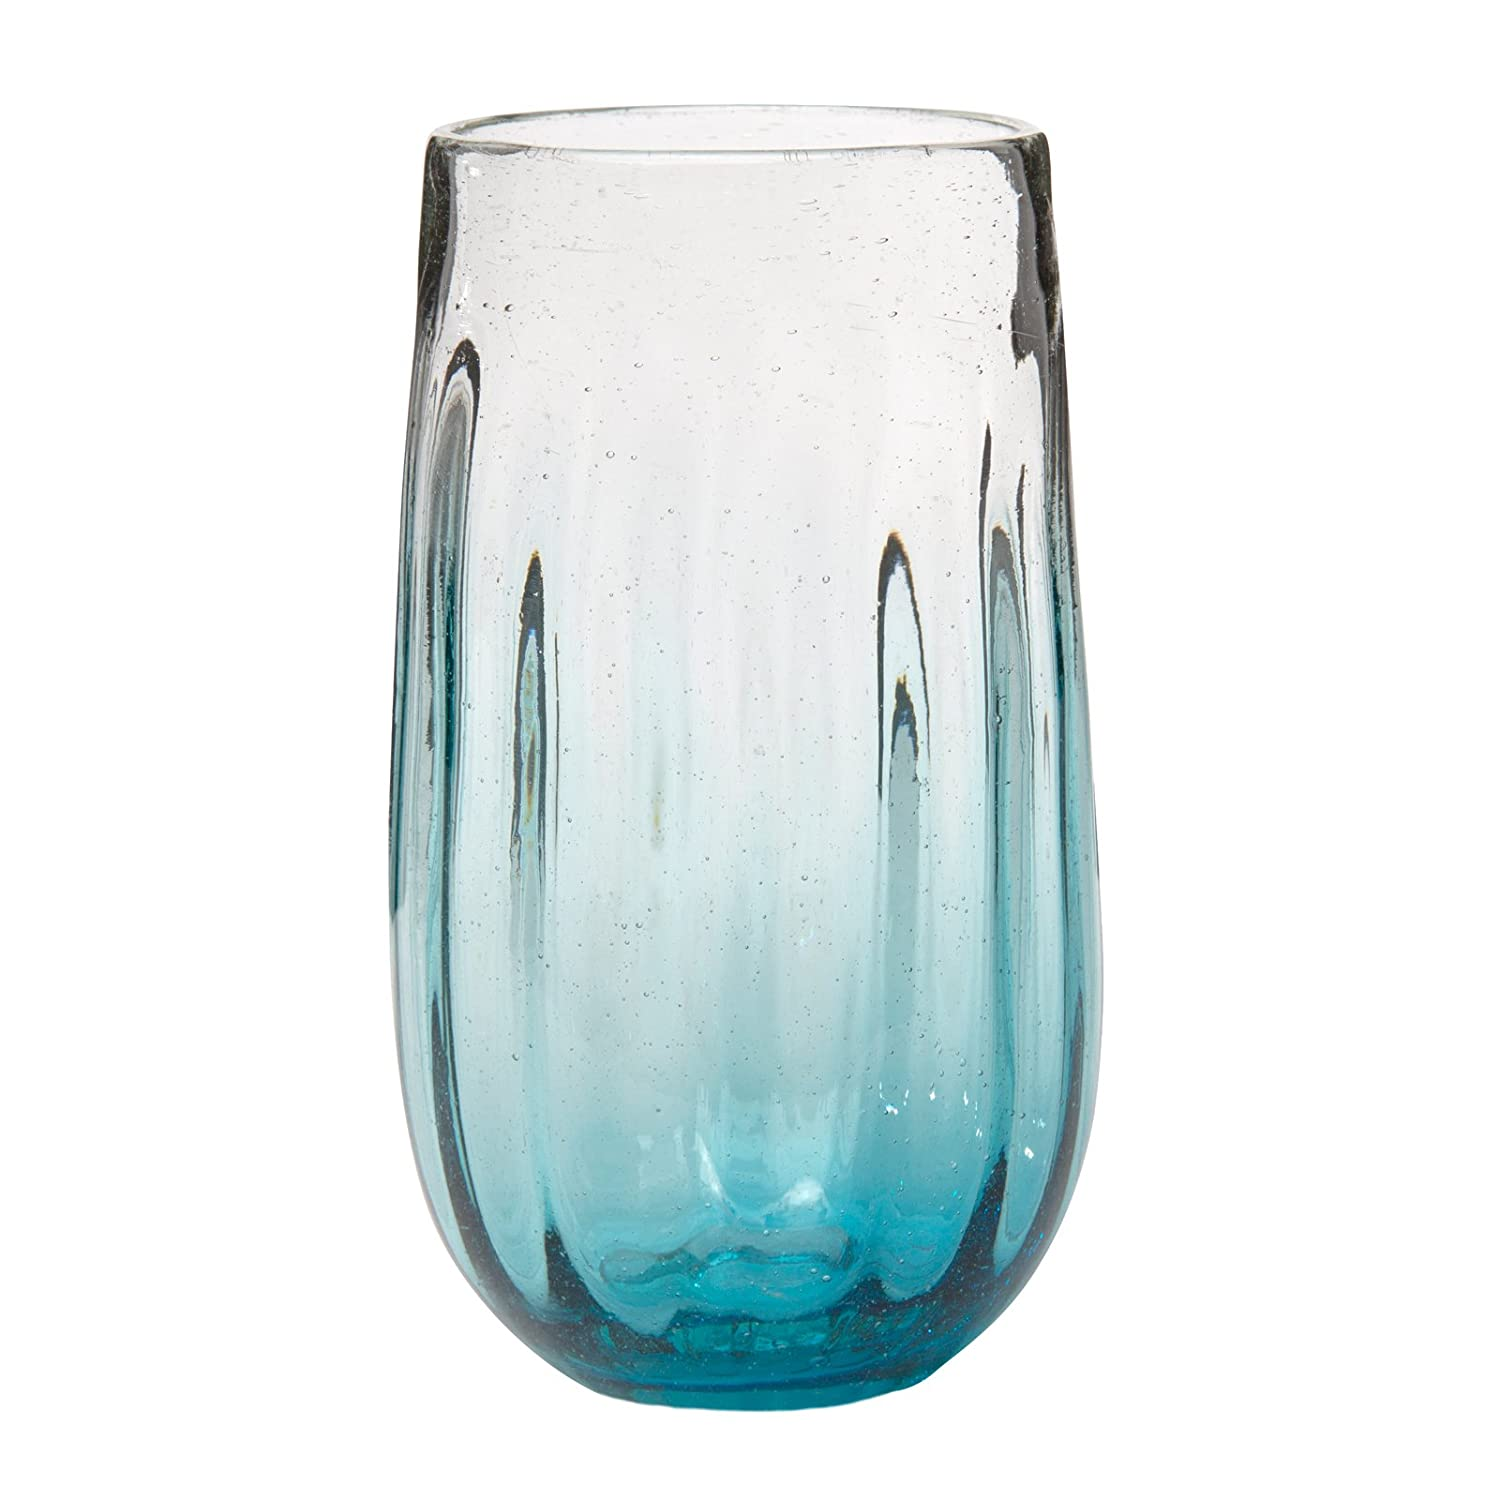 Amici Home, 7MCR067S6R, Rosa Hiball Drinking Glass, Translucent Aqua Ombre, Recycled Handblown Artisanal Mexican Tabletop Glassware, 20 Ounce Capacity, Set of 6